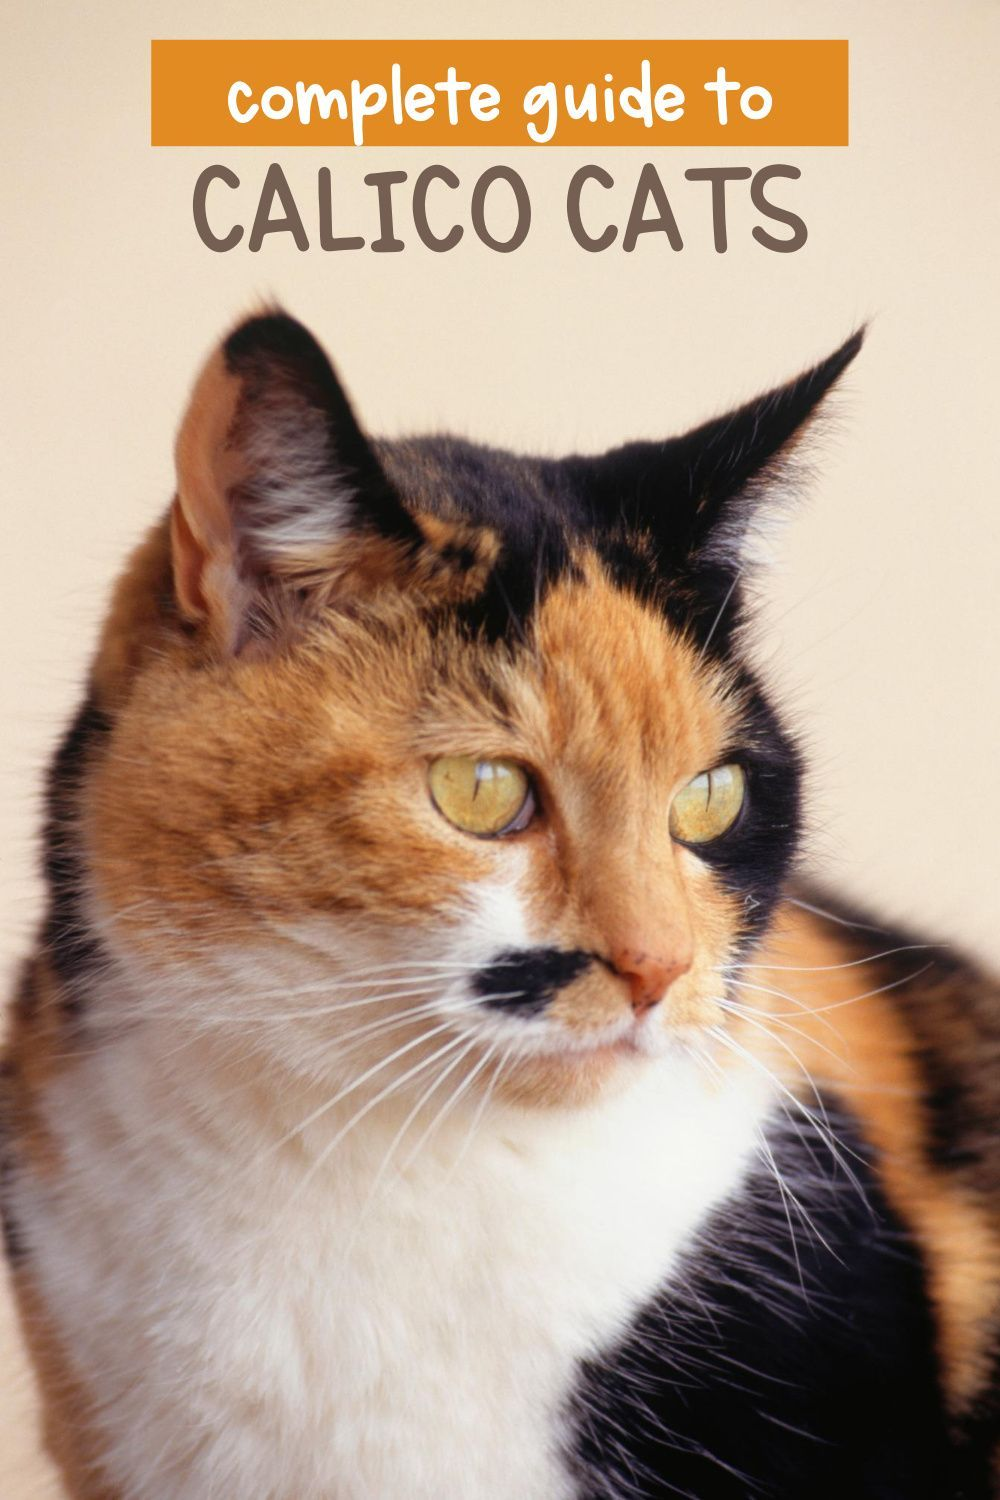 All About Calico Cats In 2020 Calico Cat Cats Cat Advice